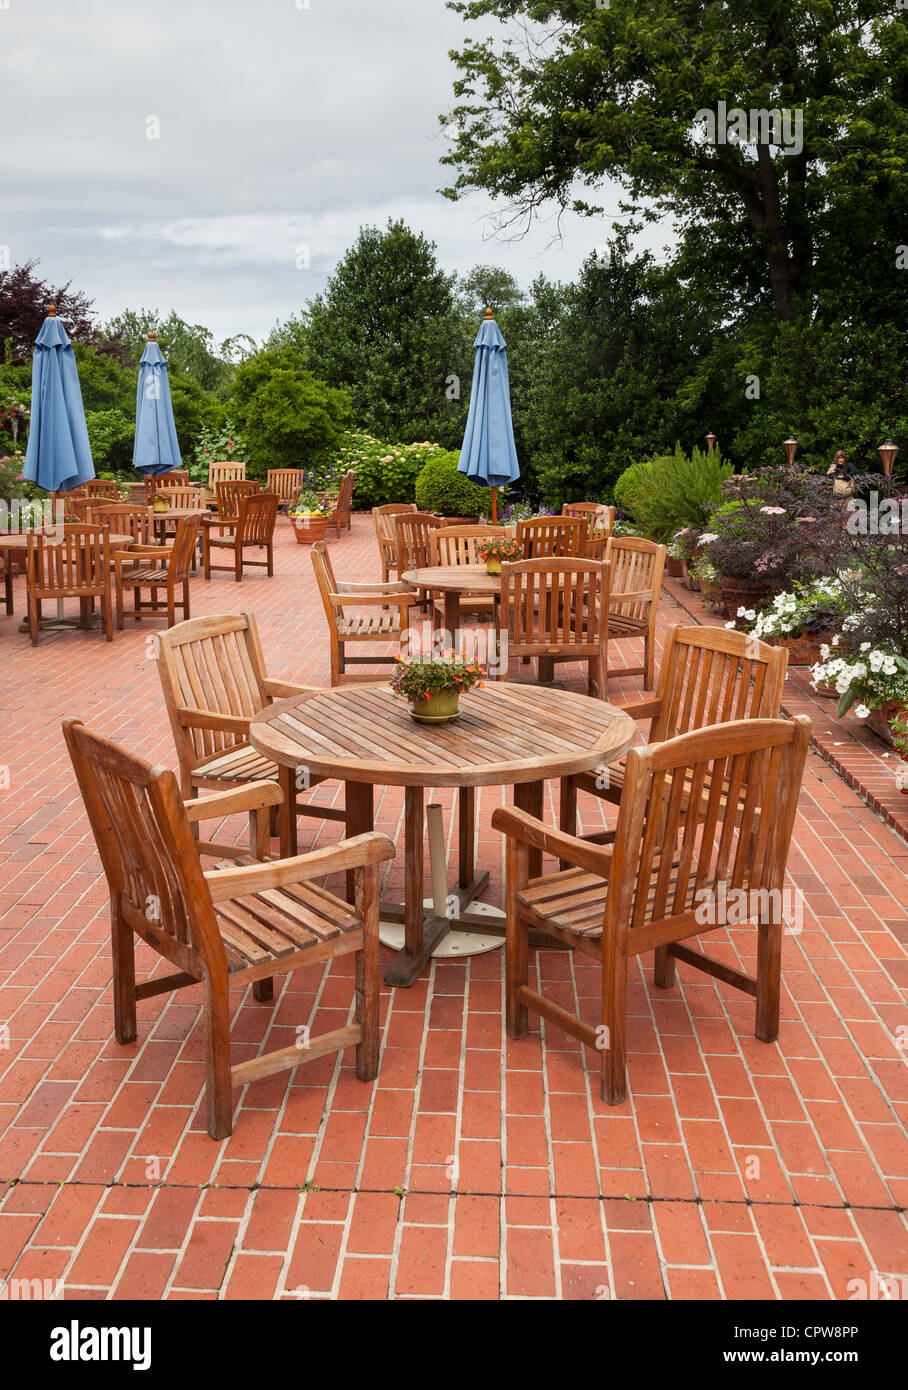 Tables and chairs on brick patio in bar cafe or restaurant - Stock Image